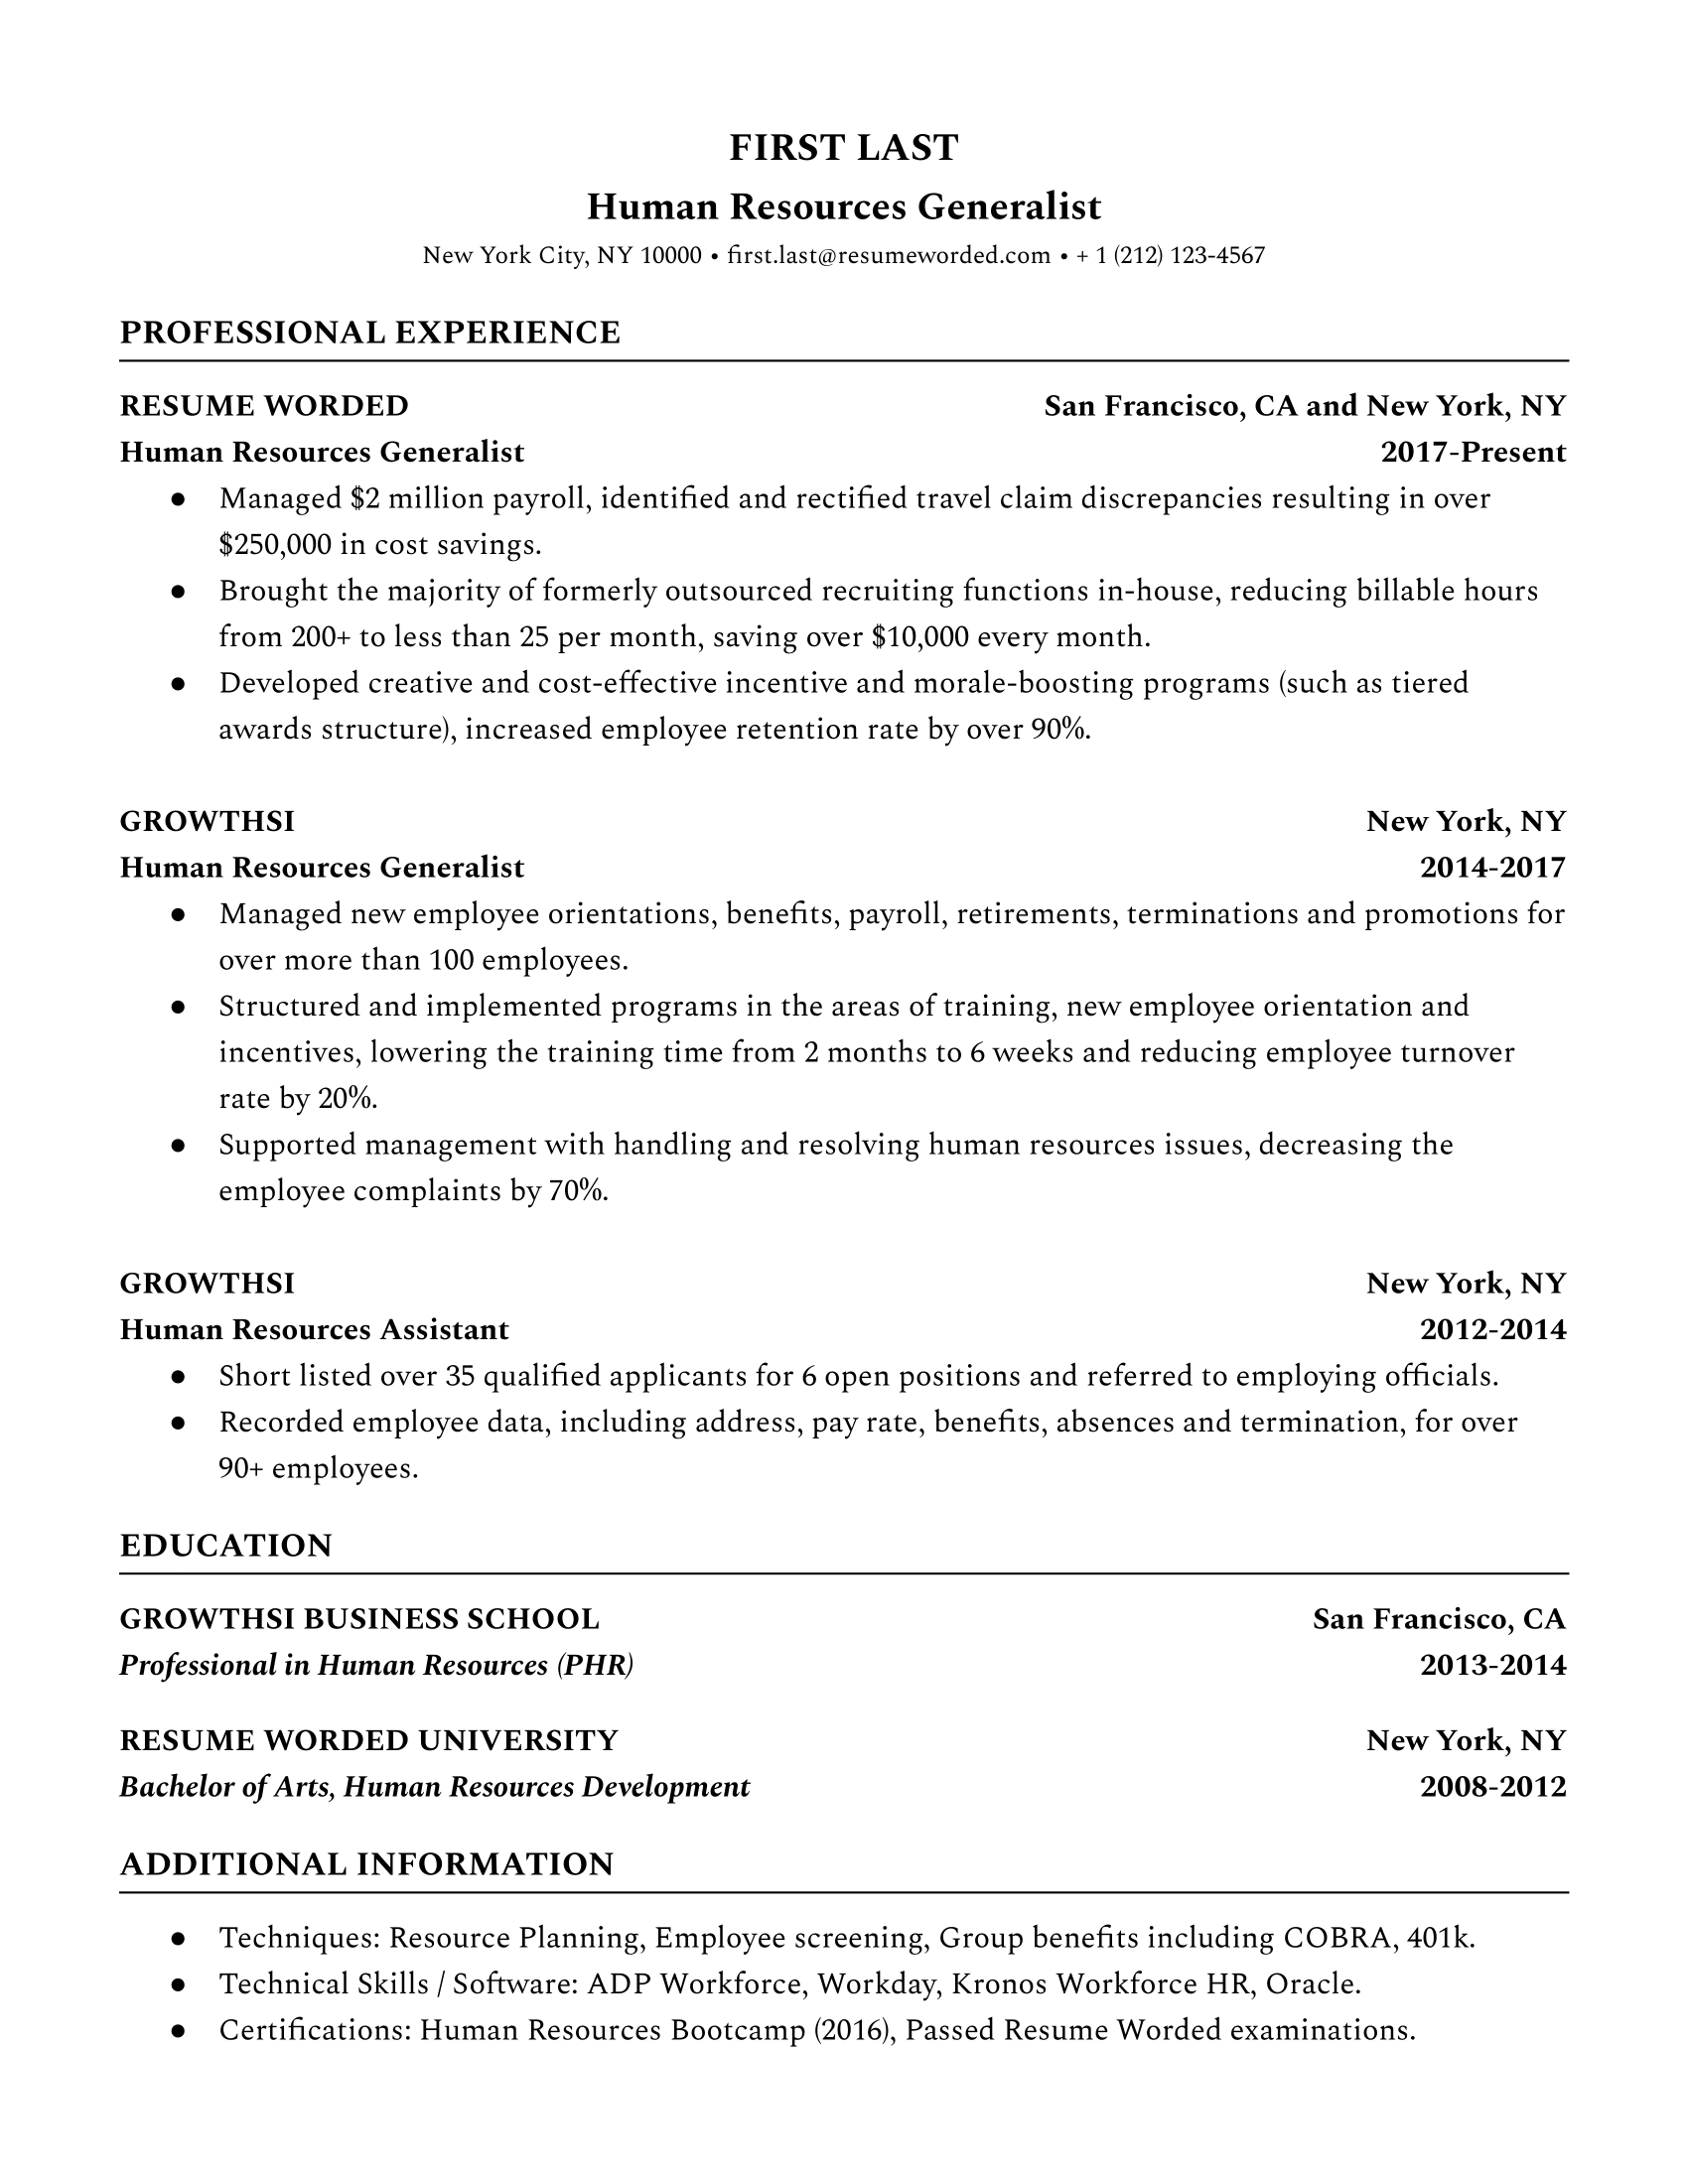 Human Resources (HR) Generalist Resume Sample